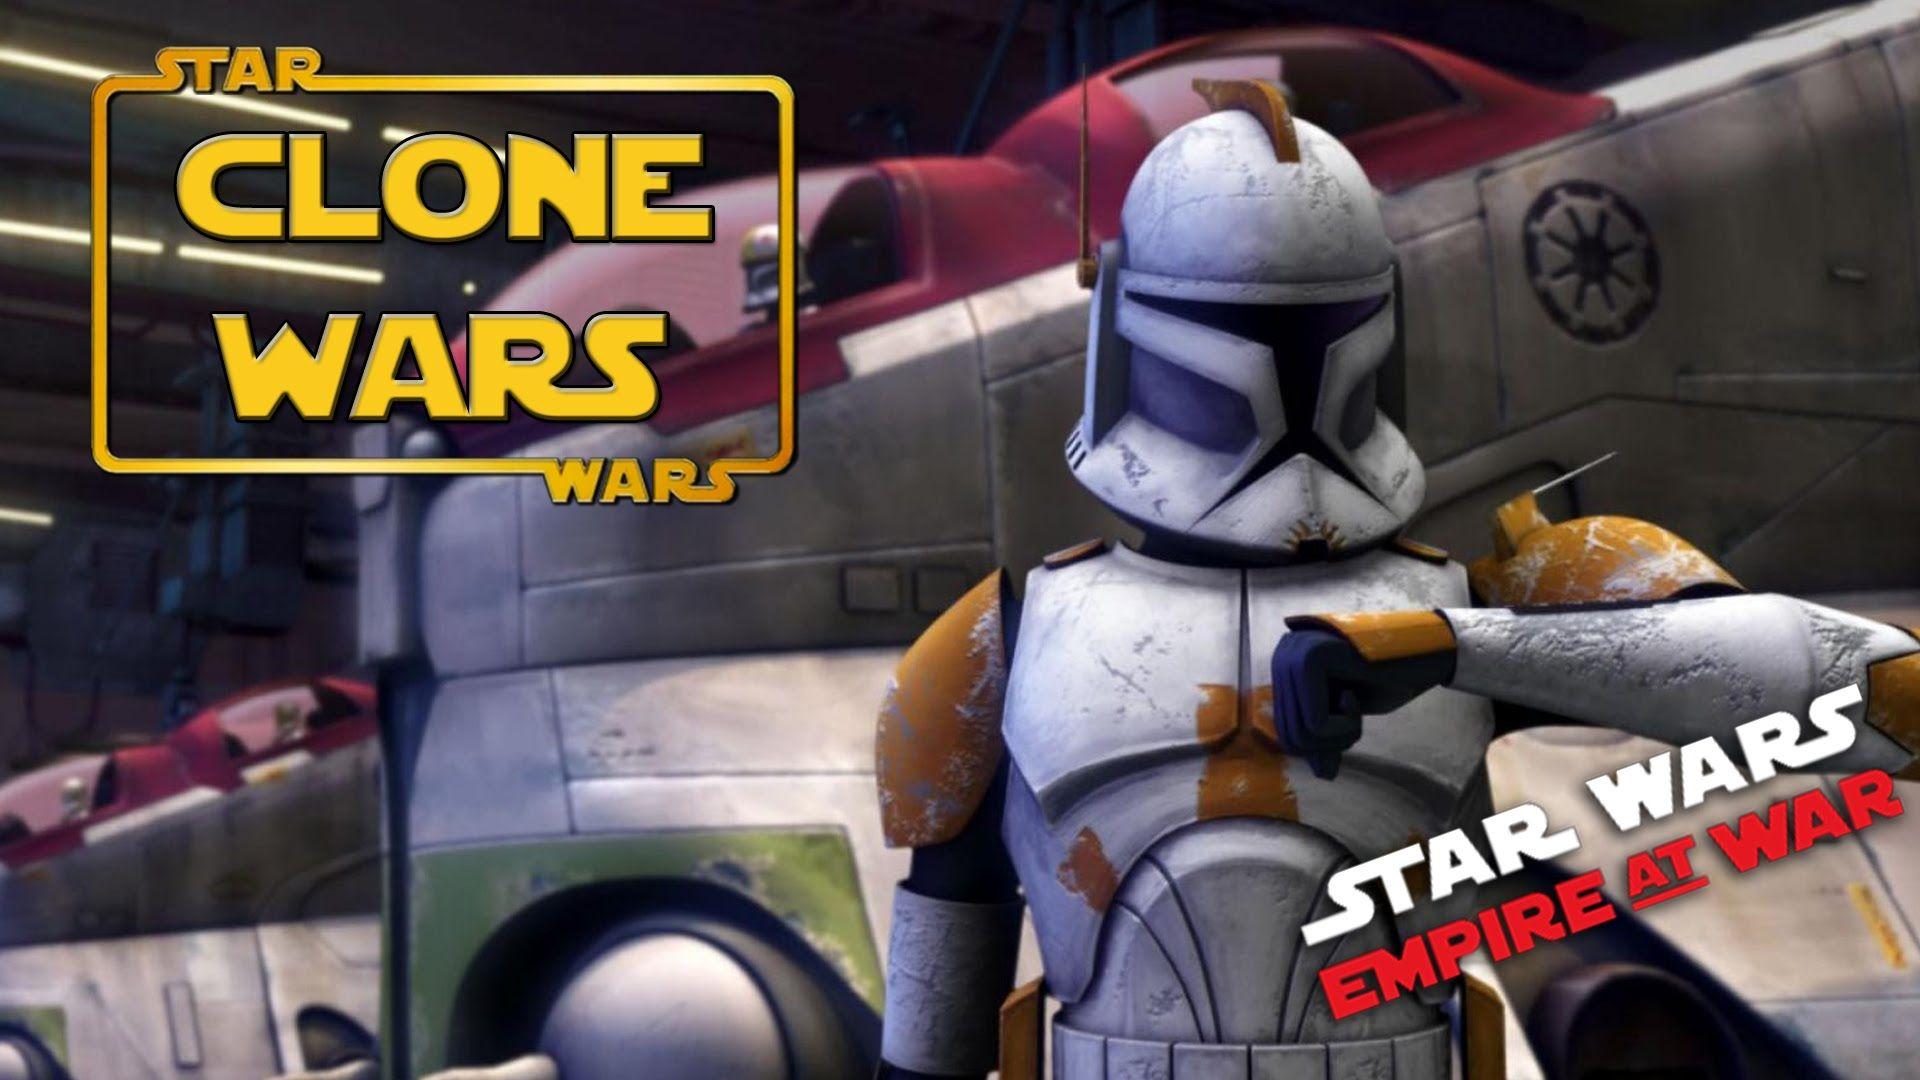 Awesome The Clone Wars Mod Empire At War Forces Of Corruption